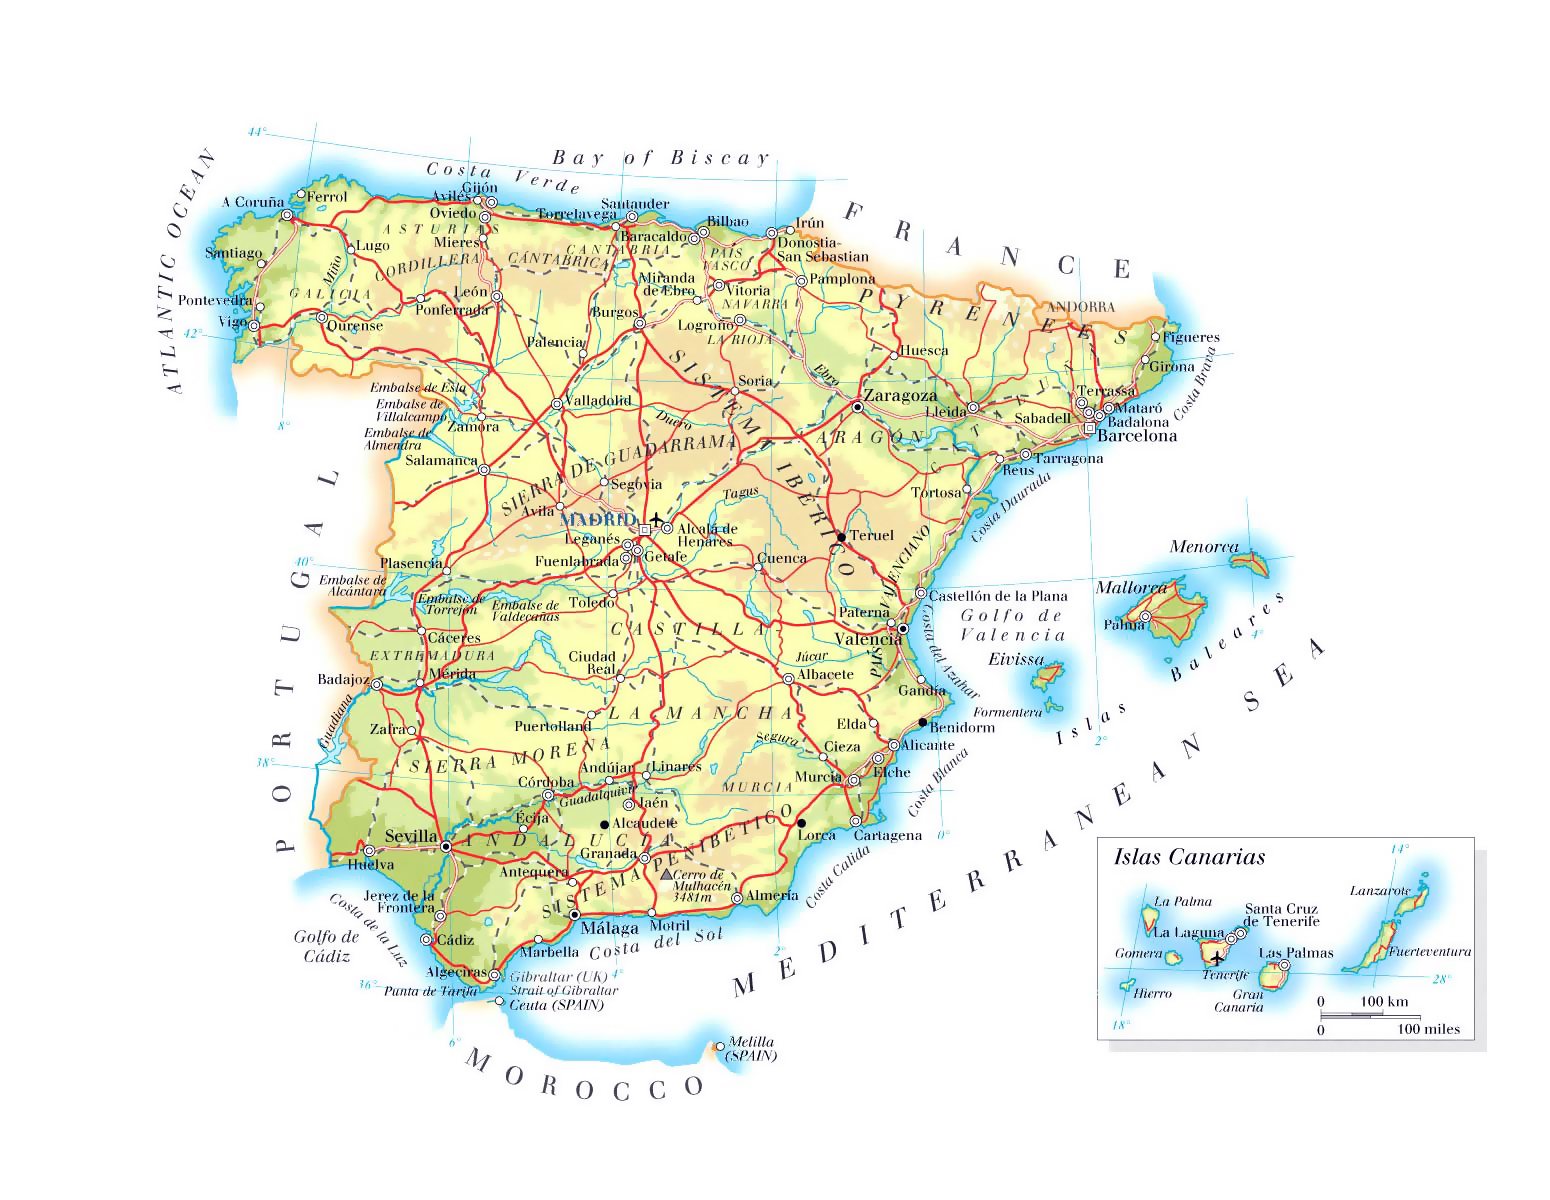 Map Of Spain Showing Airports.Detailed Elevation Map Of Spain With Roads Major Cities And